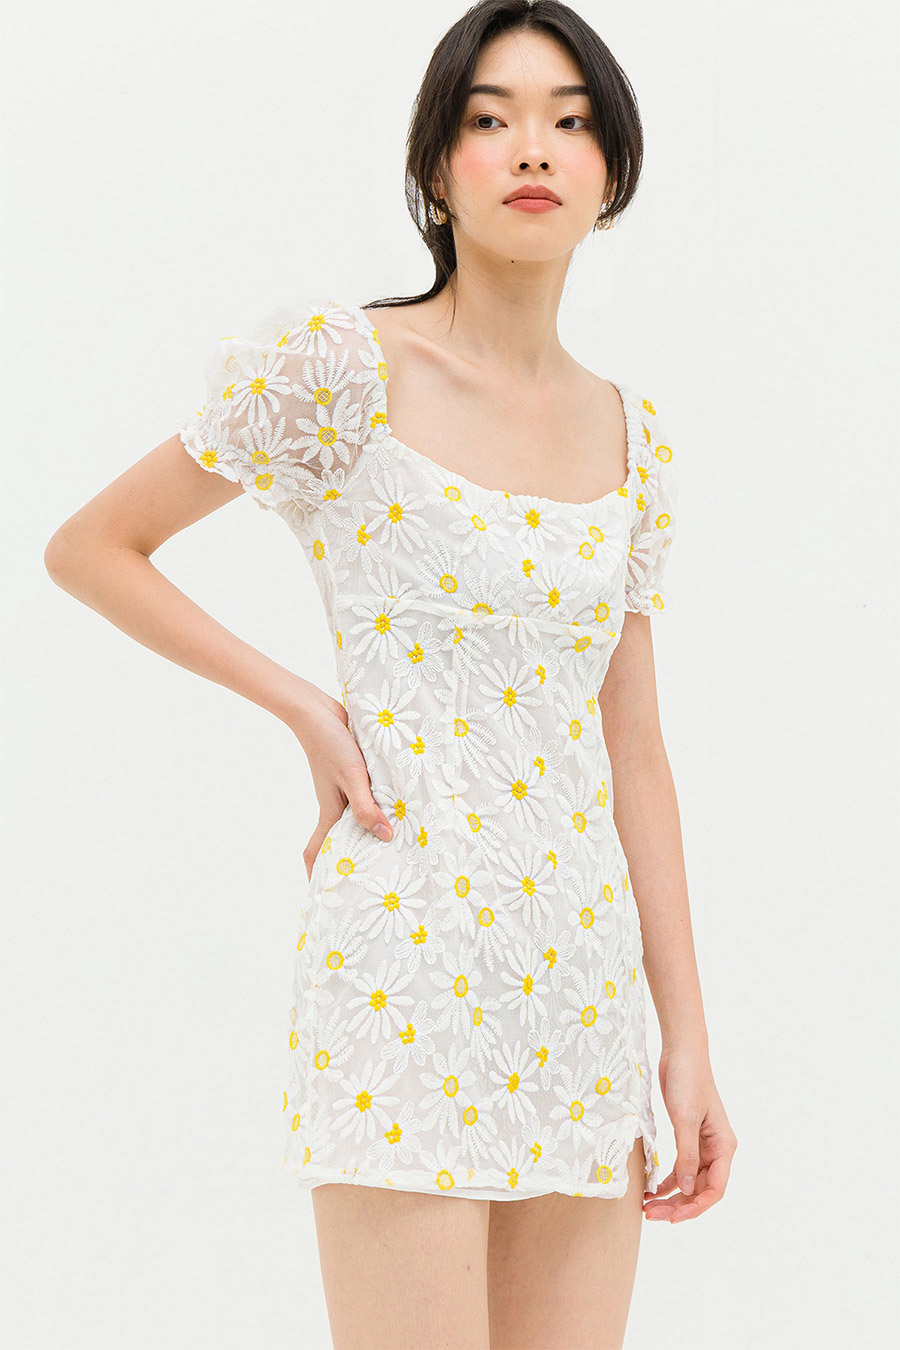 *BO* ANTONIETTE DRESS - DAISY